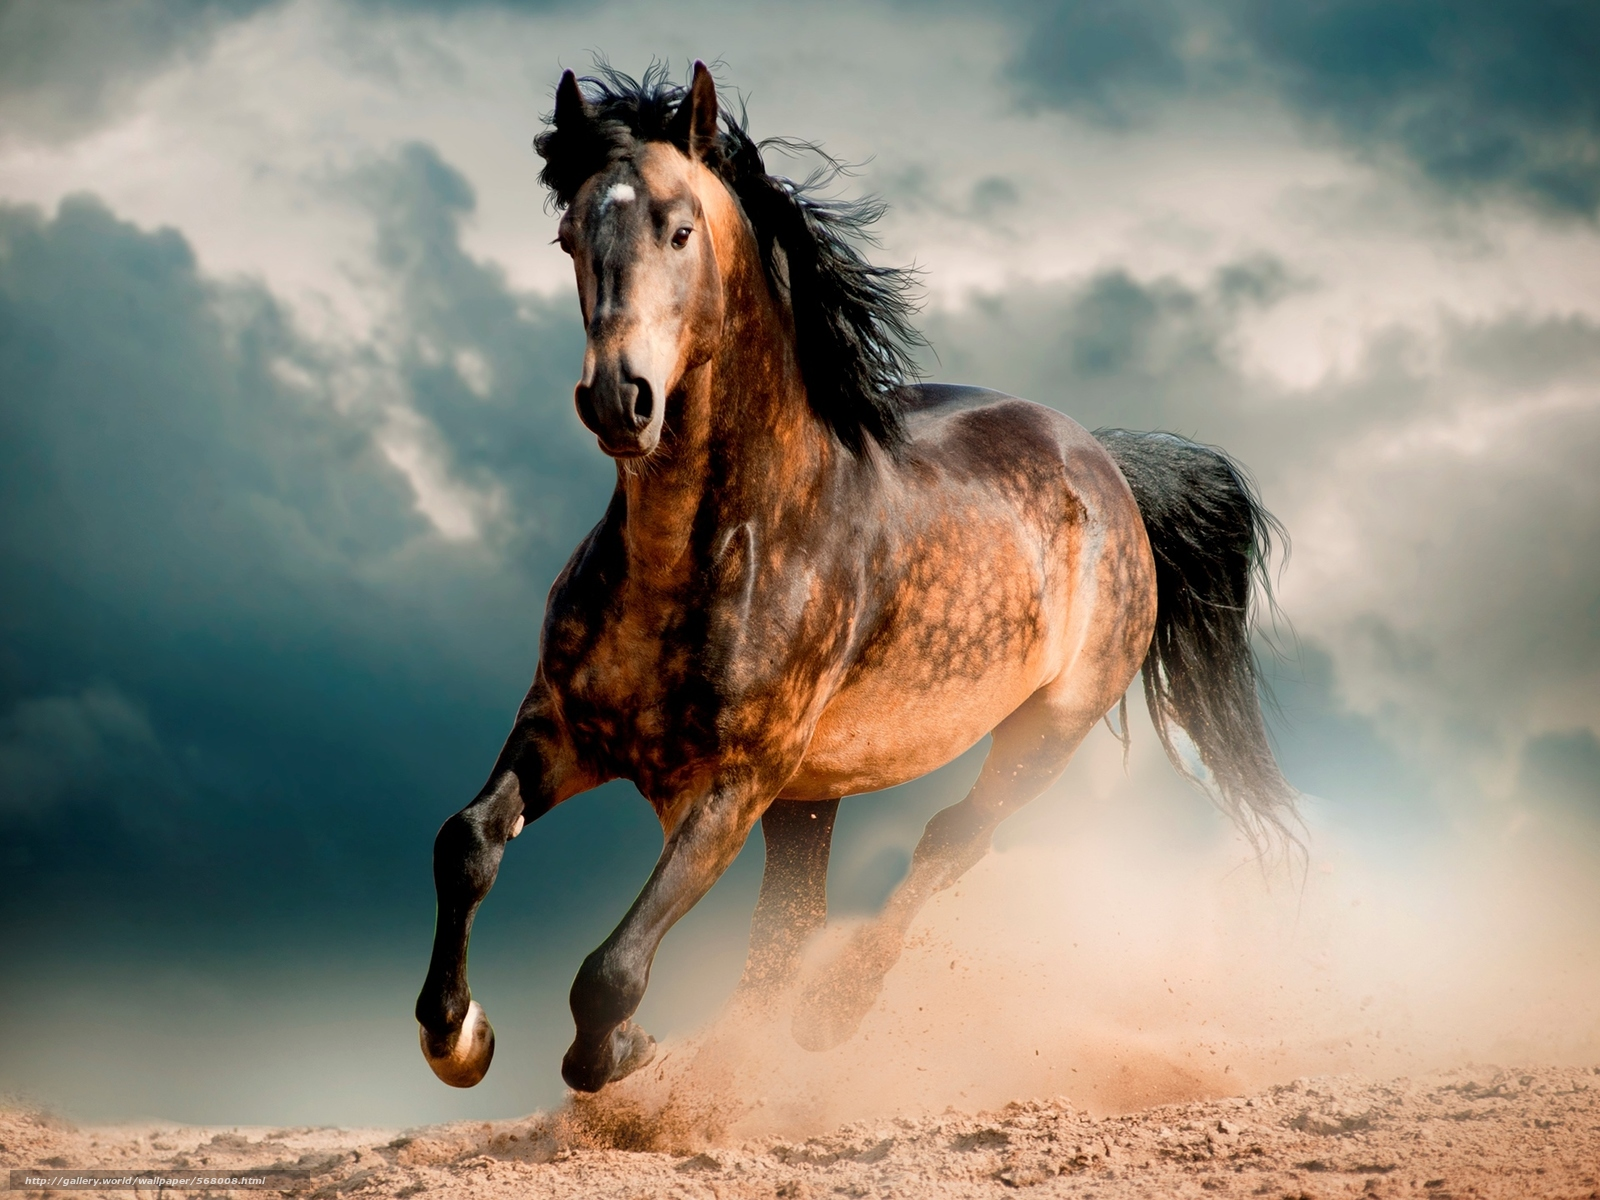 Running horses wallpaper desktop